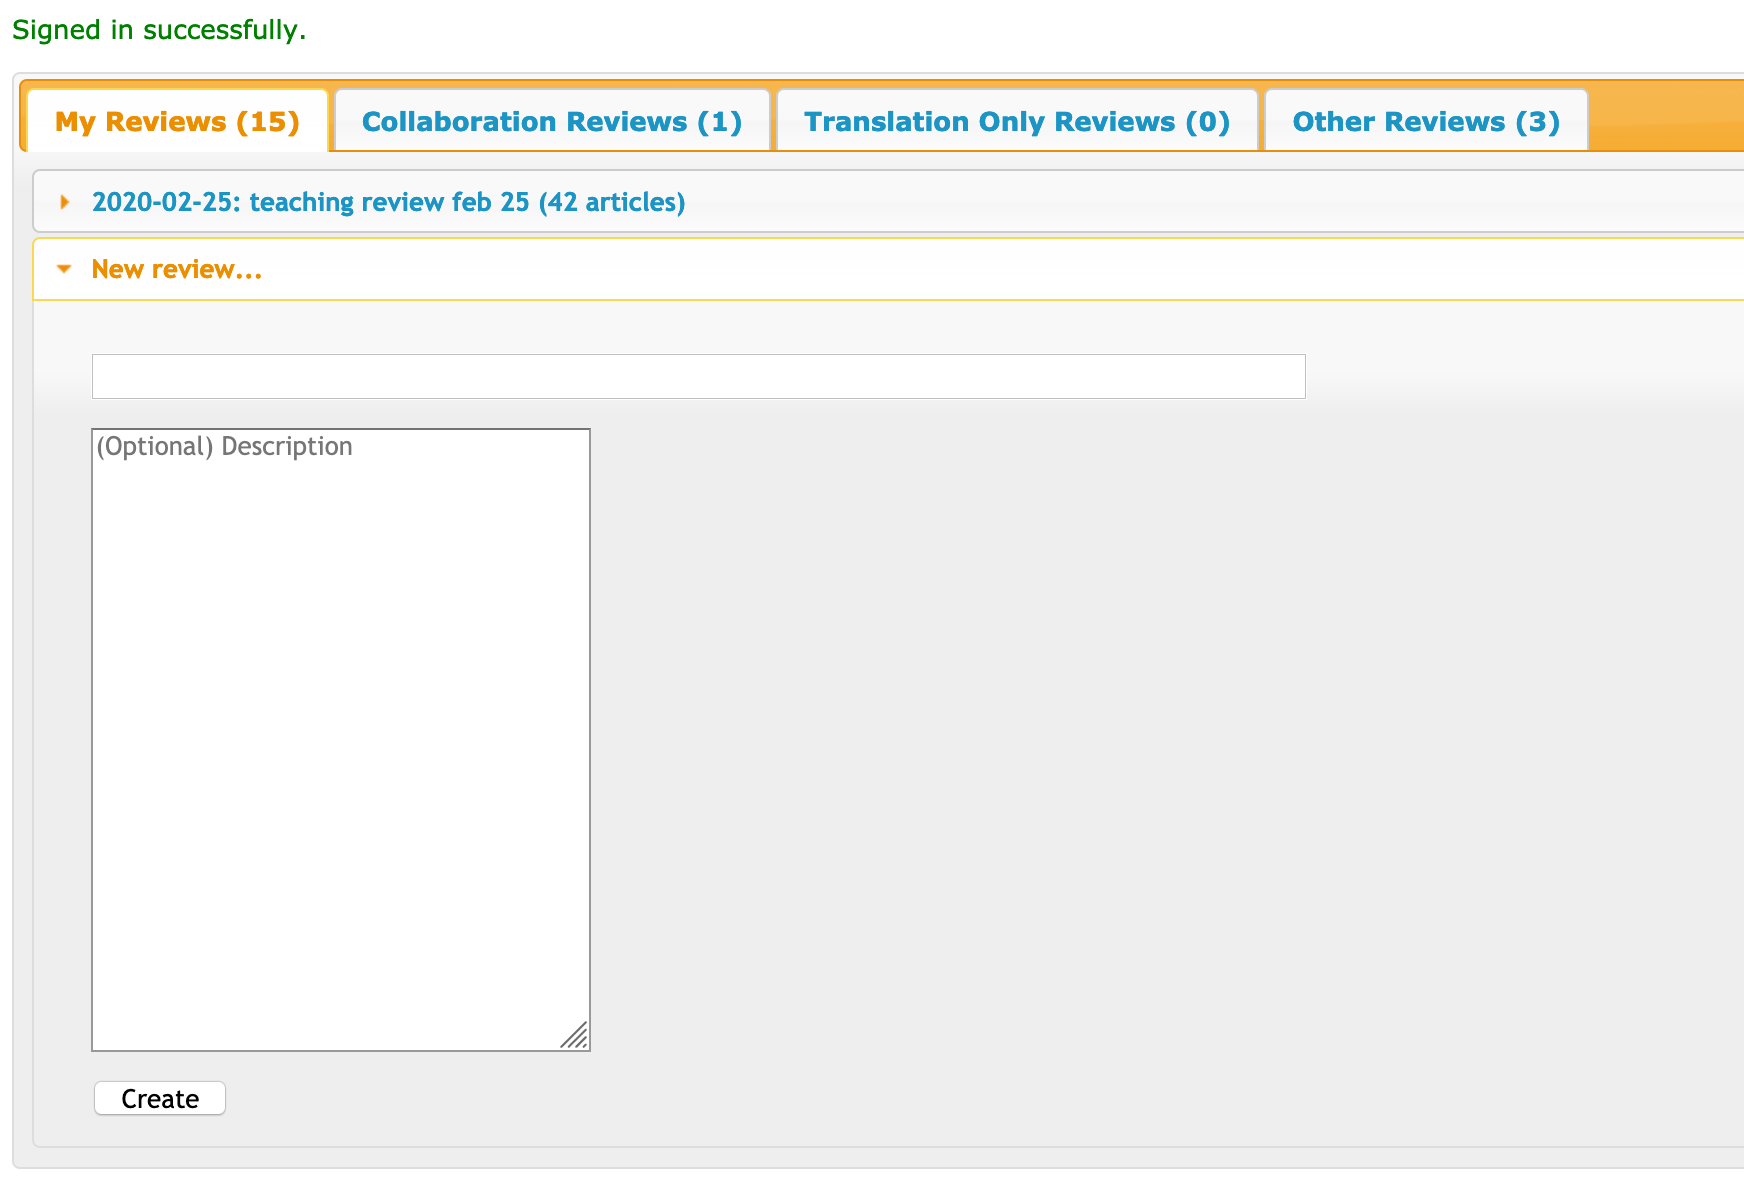 Screenshot of page to create a new review